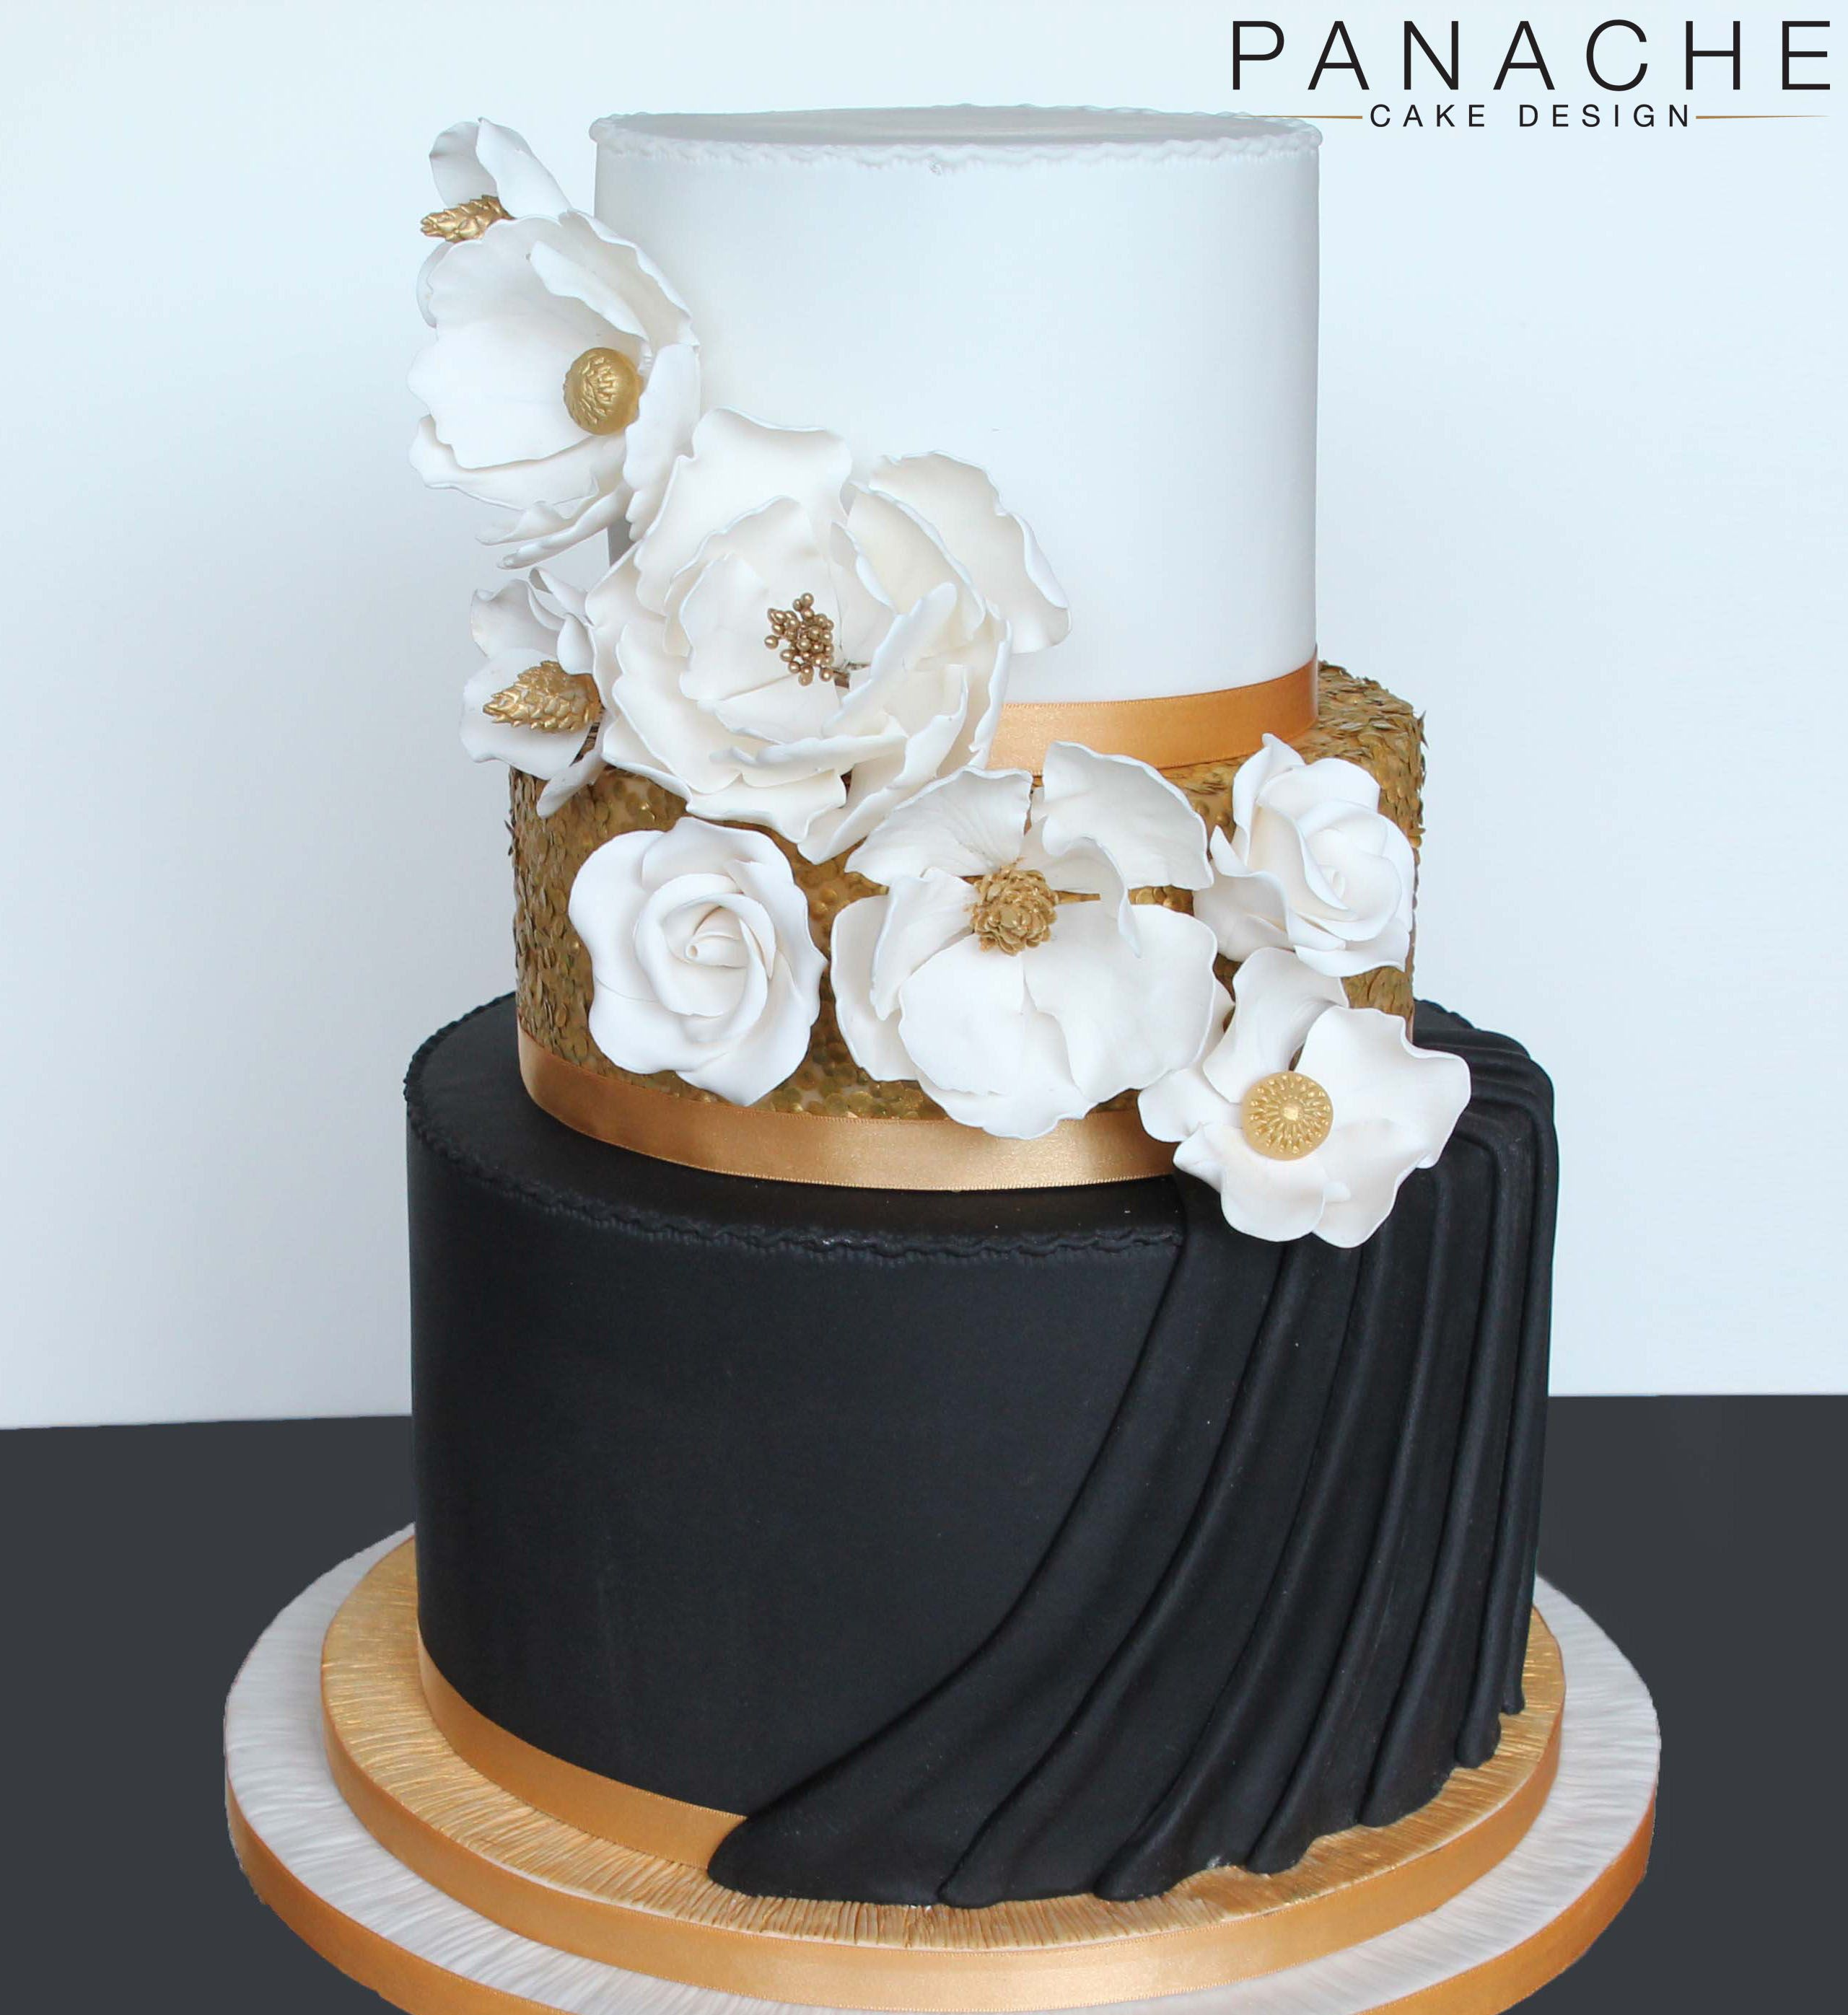 Contemporary Wedding Cake Wedding Cakes London Monochrome Black Gold White Sugar Flowers Han Contemporary Wedding Cakes Wedding Cake London Black Wedding Cakes